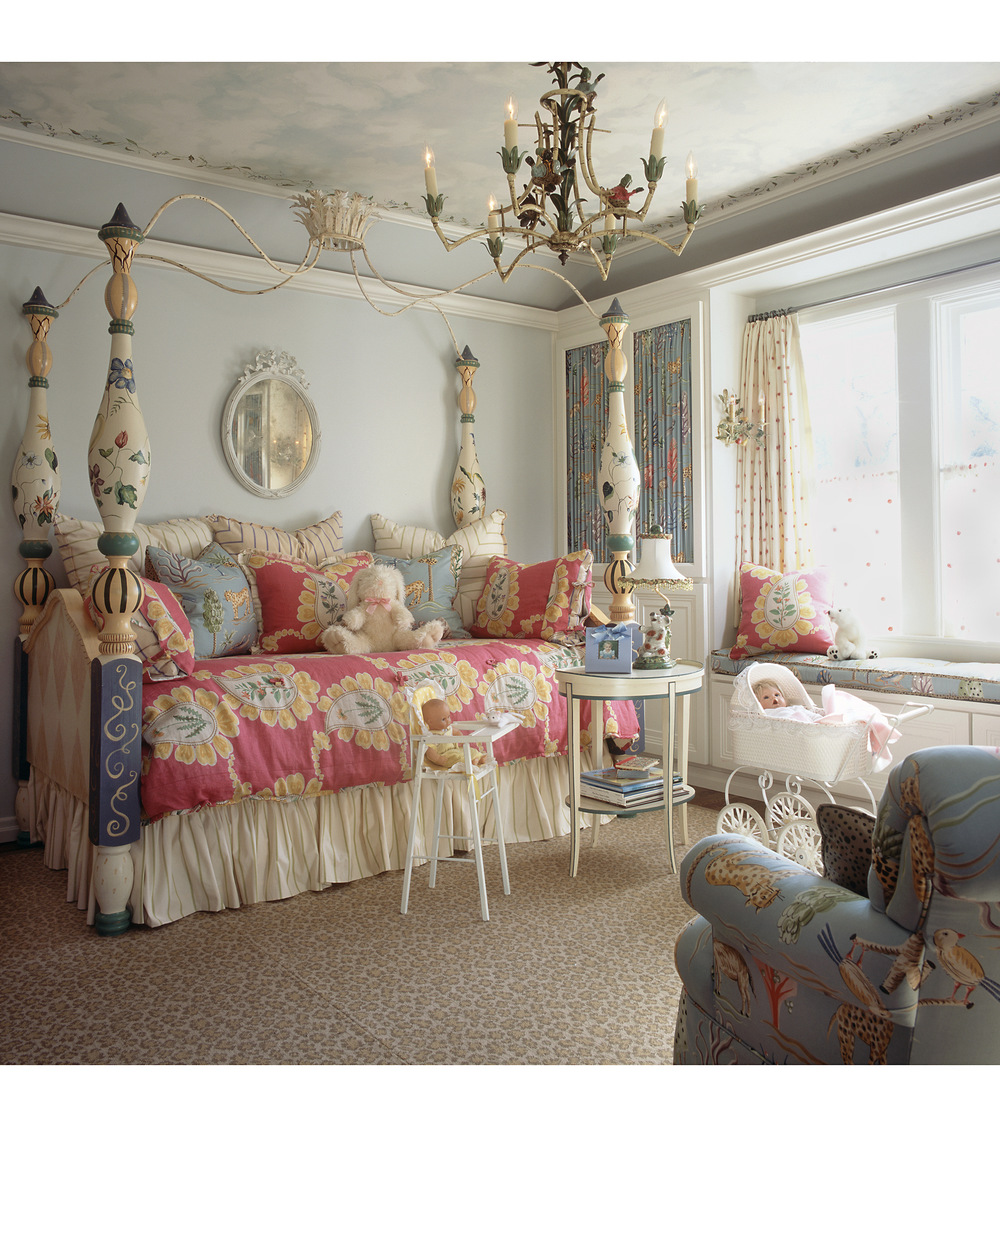 Highland Park Tudor Little Girls Room